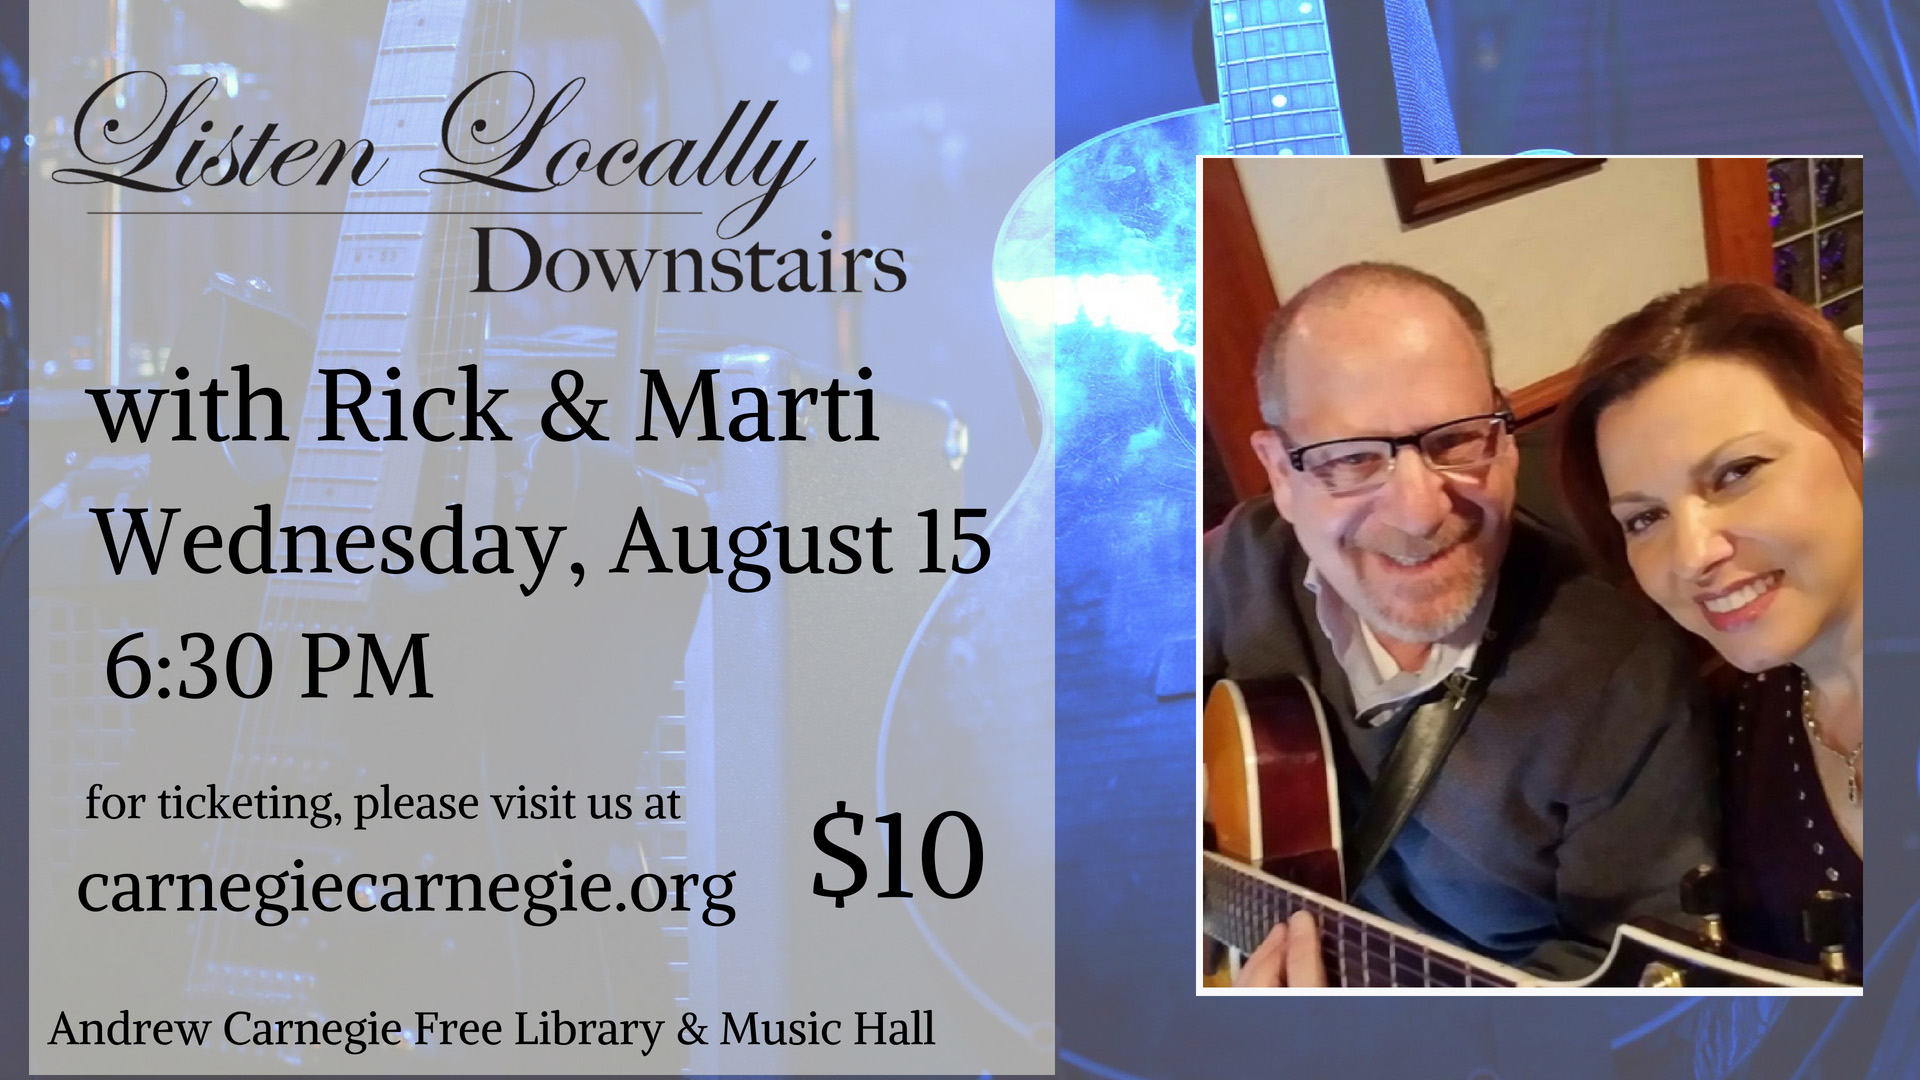 Listen Locally Downstairs with Rick and Marti